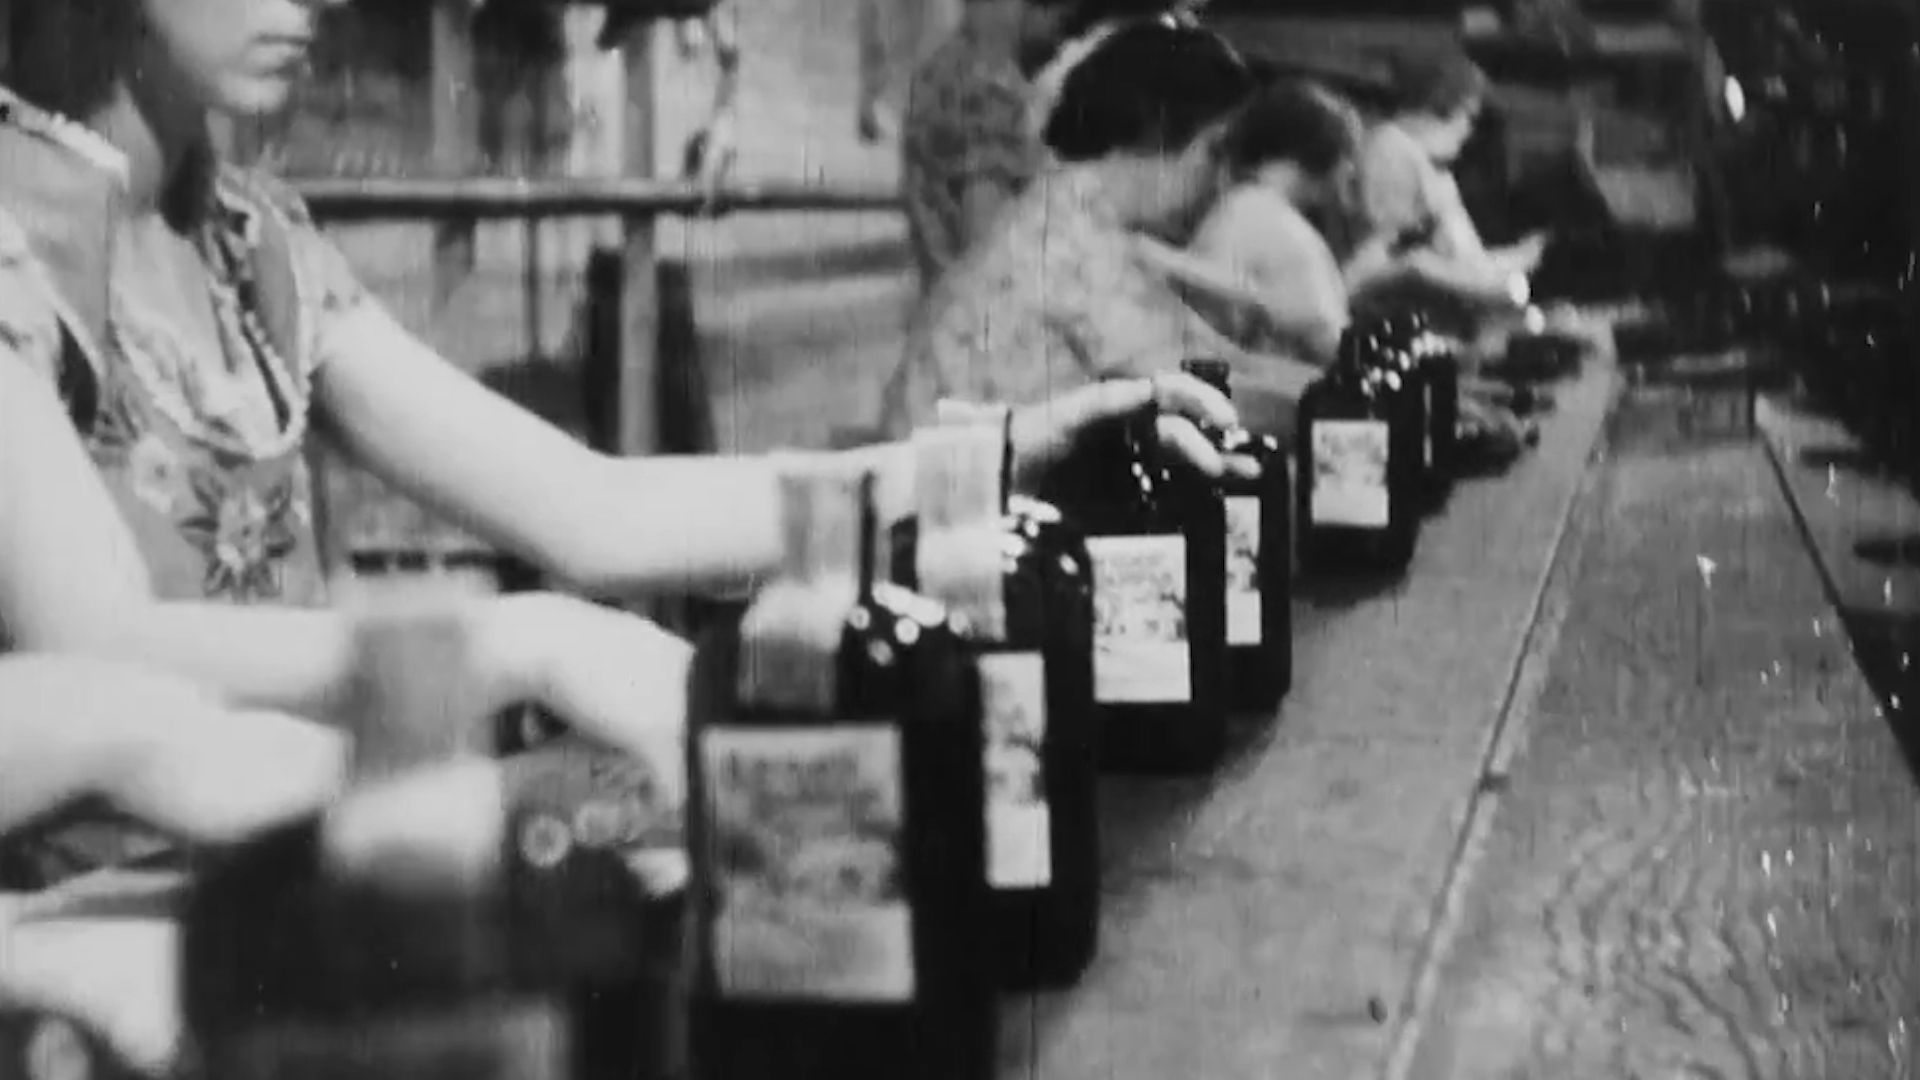 Prohibition bottles